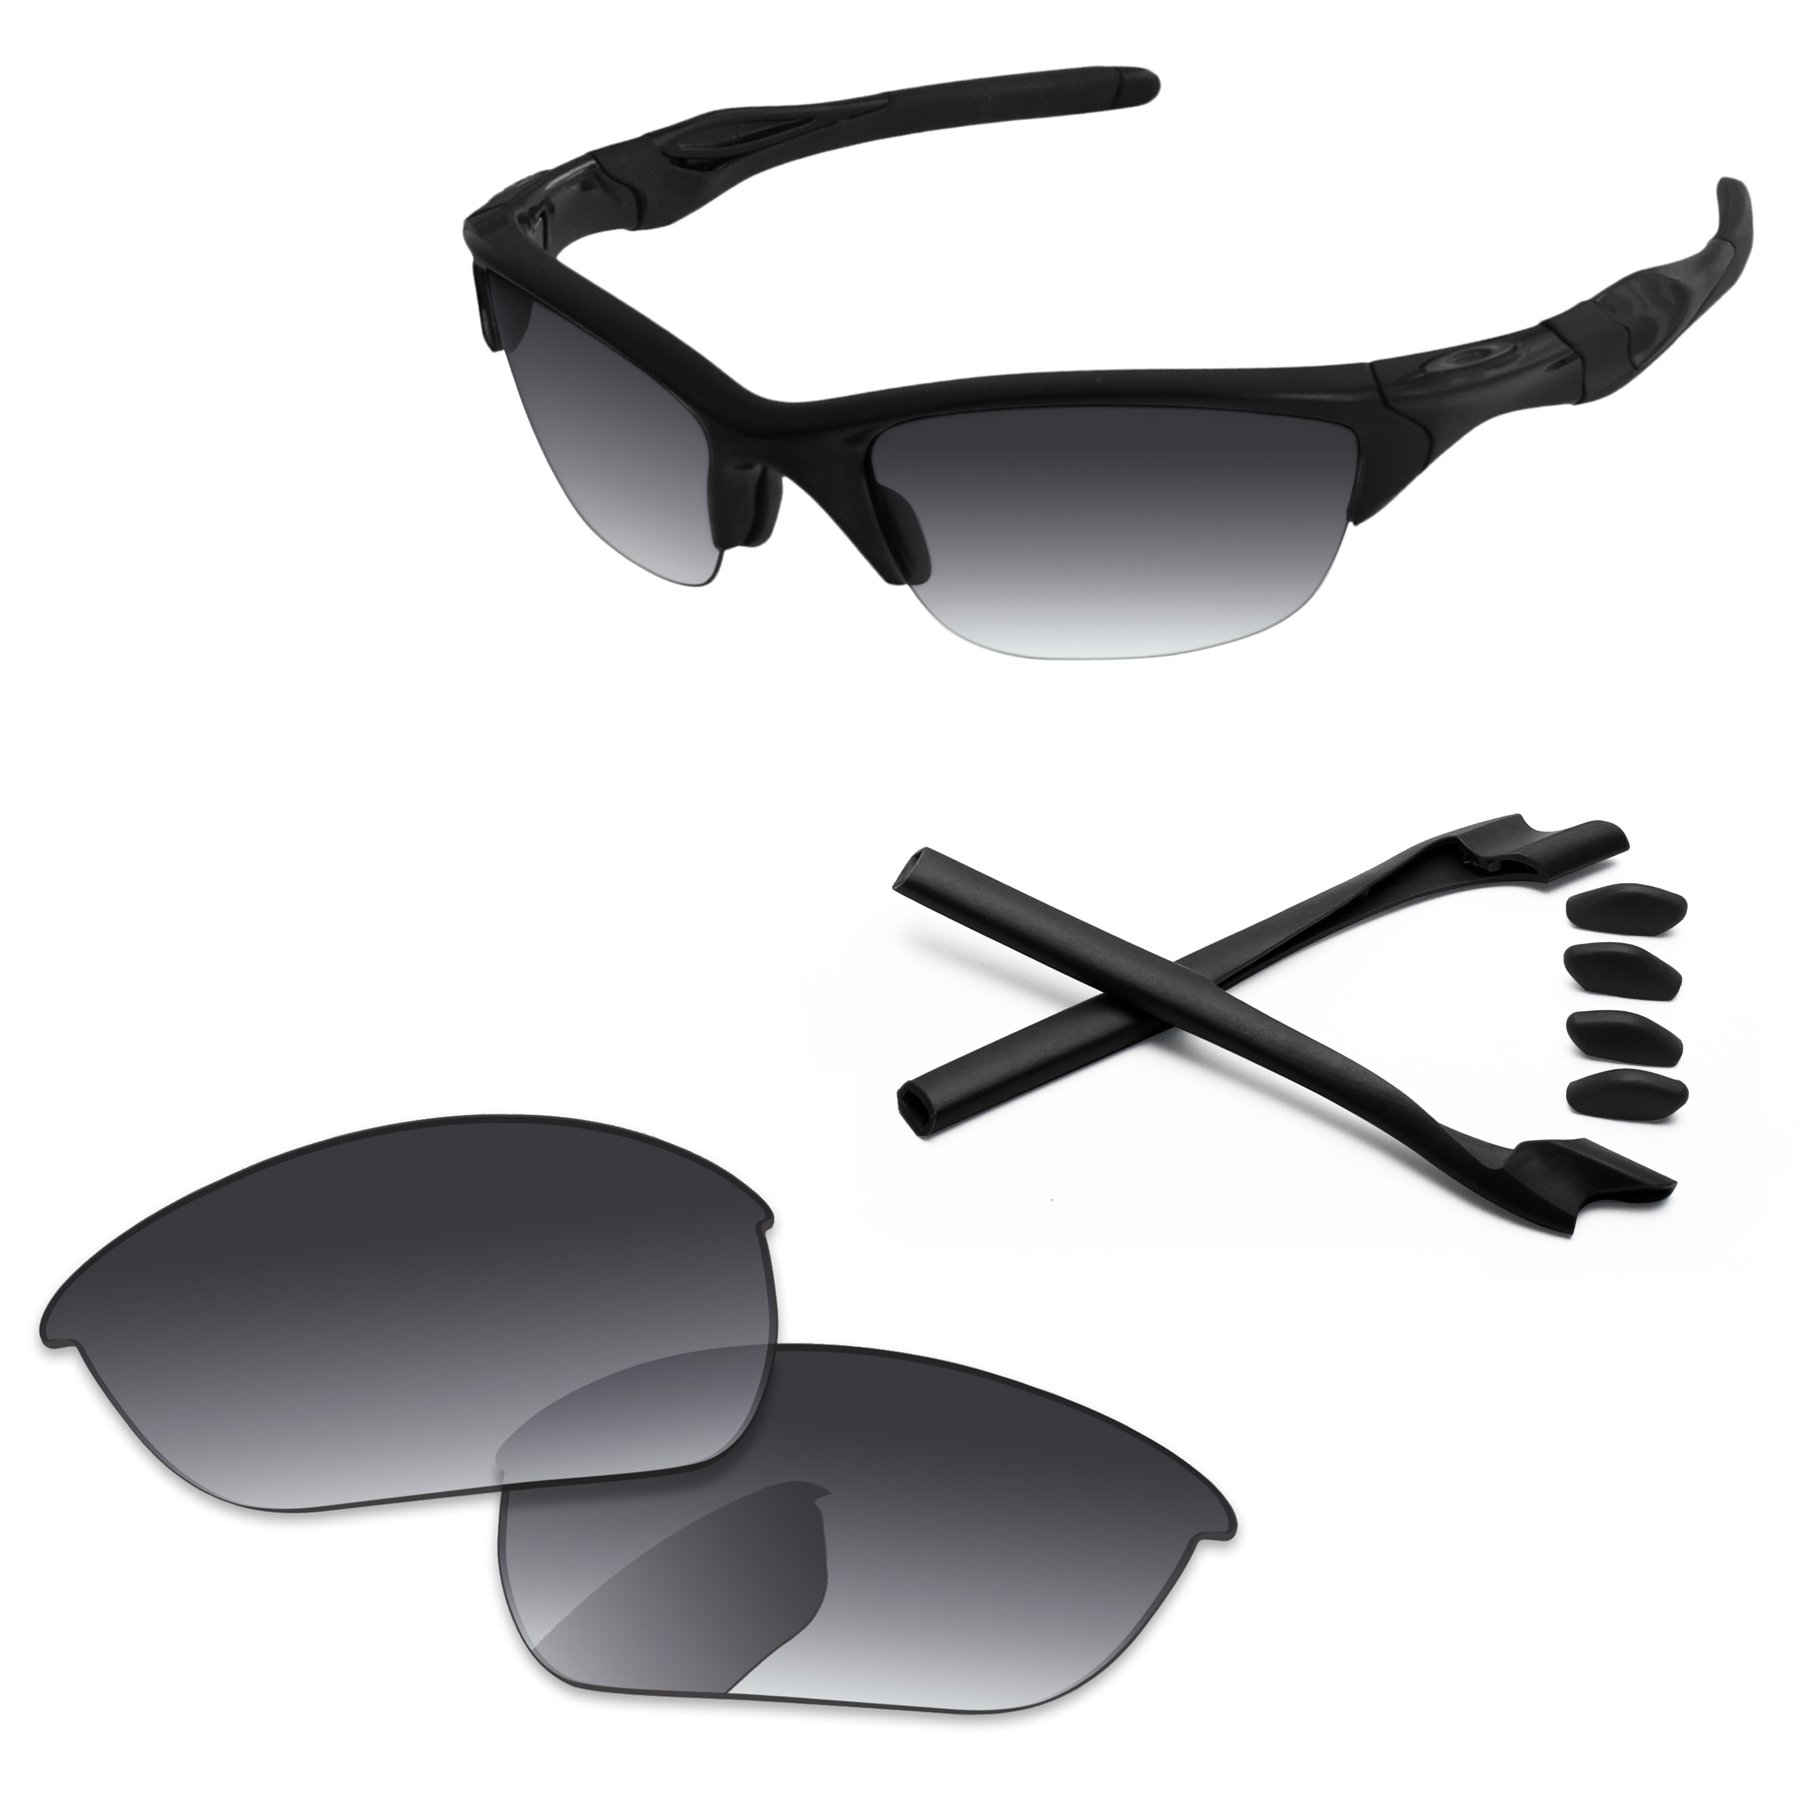 PapaViva Replacement Lenses & Rubber Kits for Oakley Half Jacket 2.0 Grey Gradient - Polarized